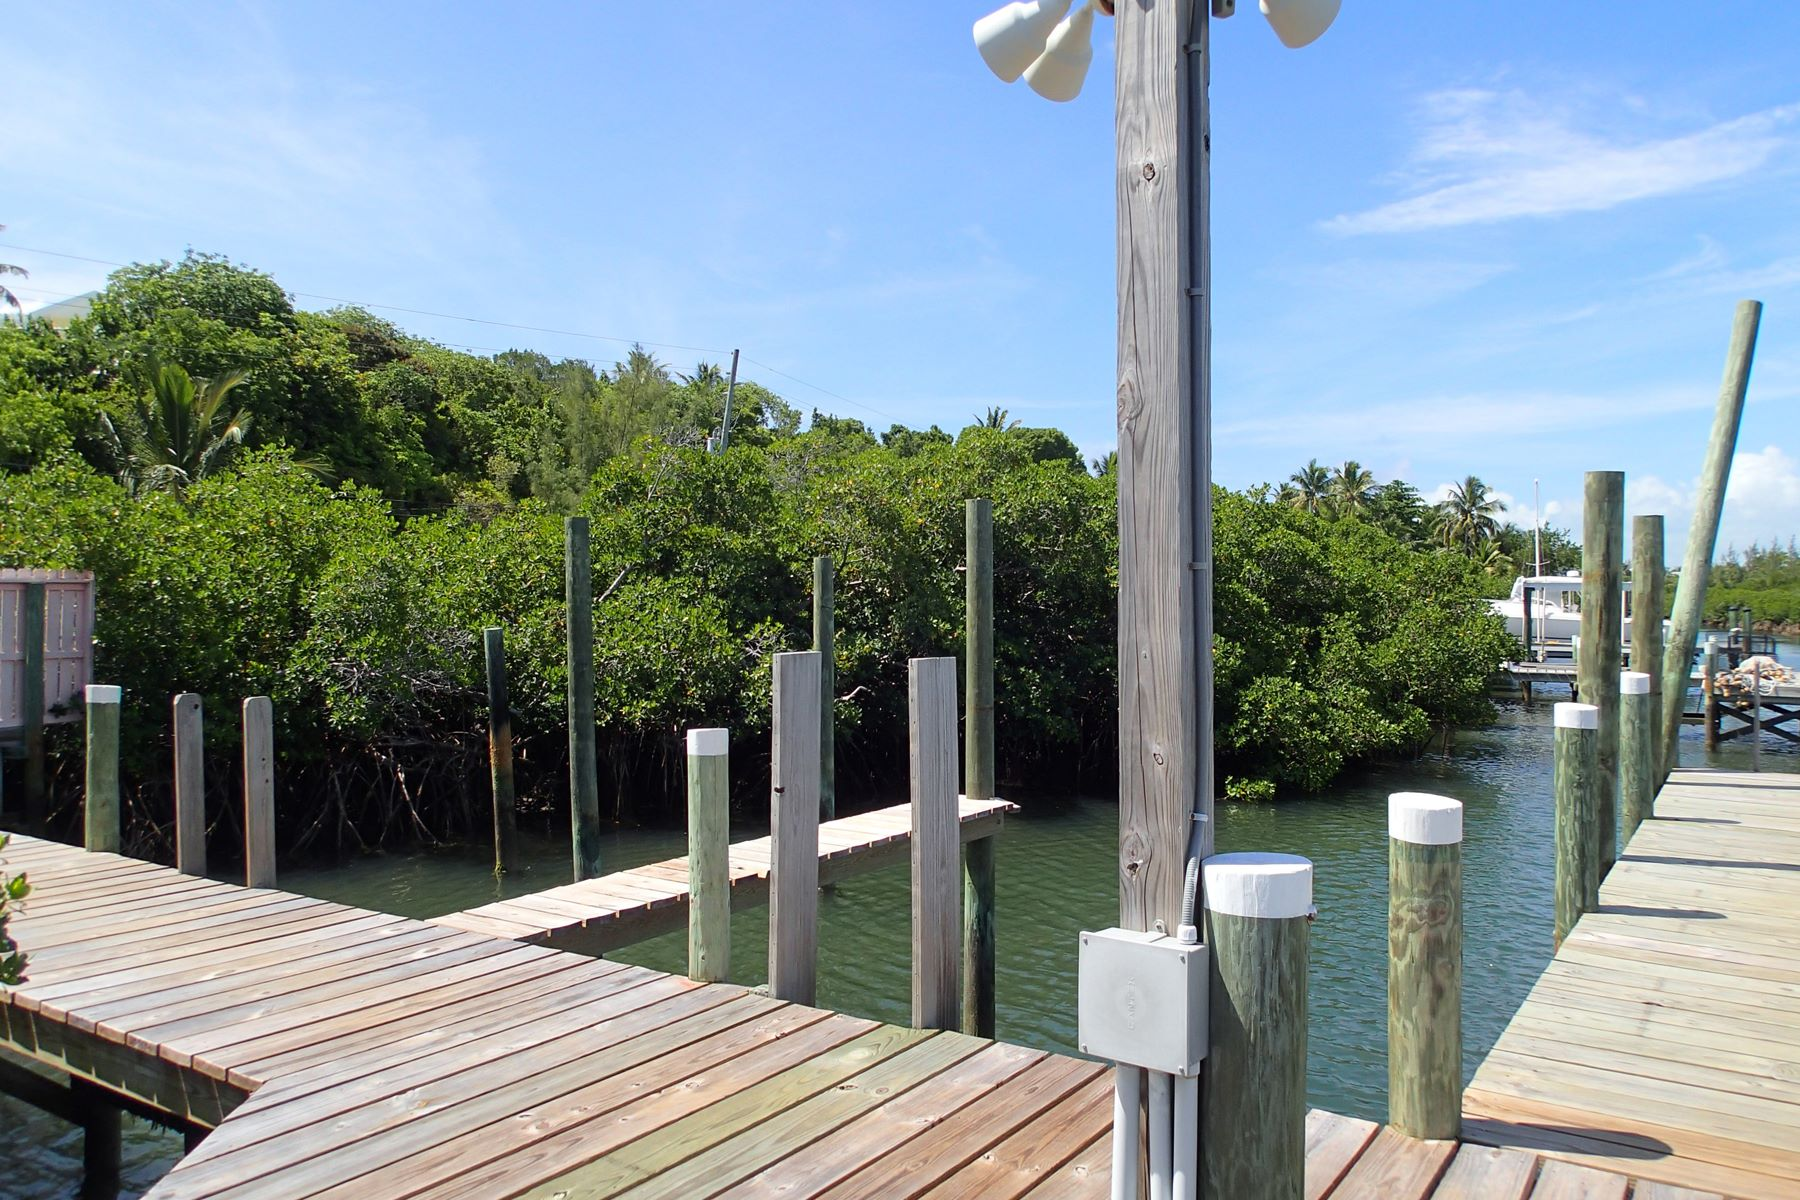 for Sale at Nigh Creek Dock Slips H, I & J Elbow Cay Hope Town, Abaco Bahamas